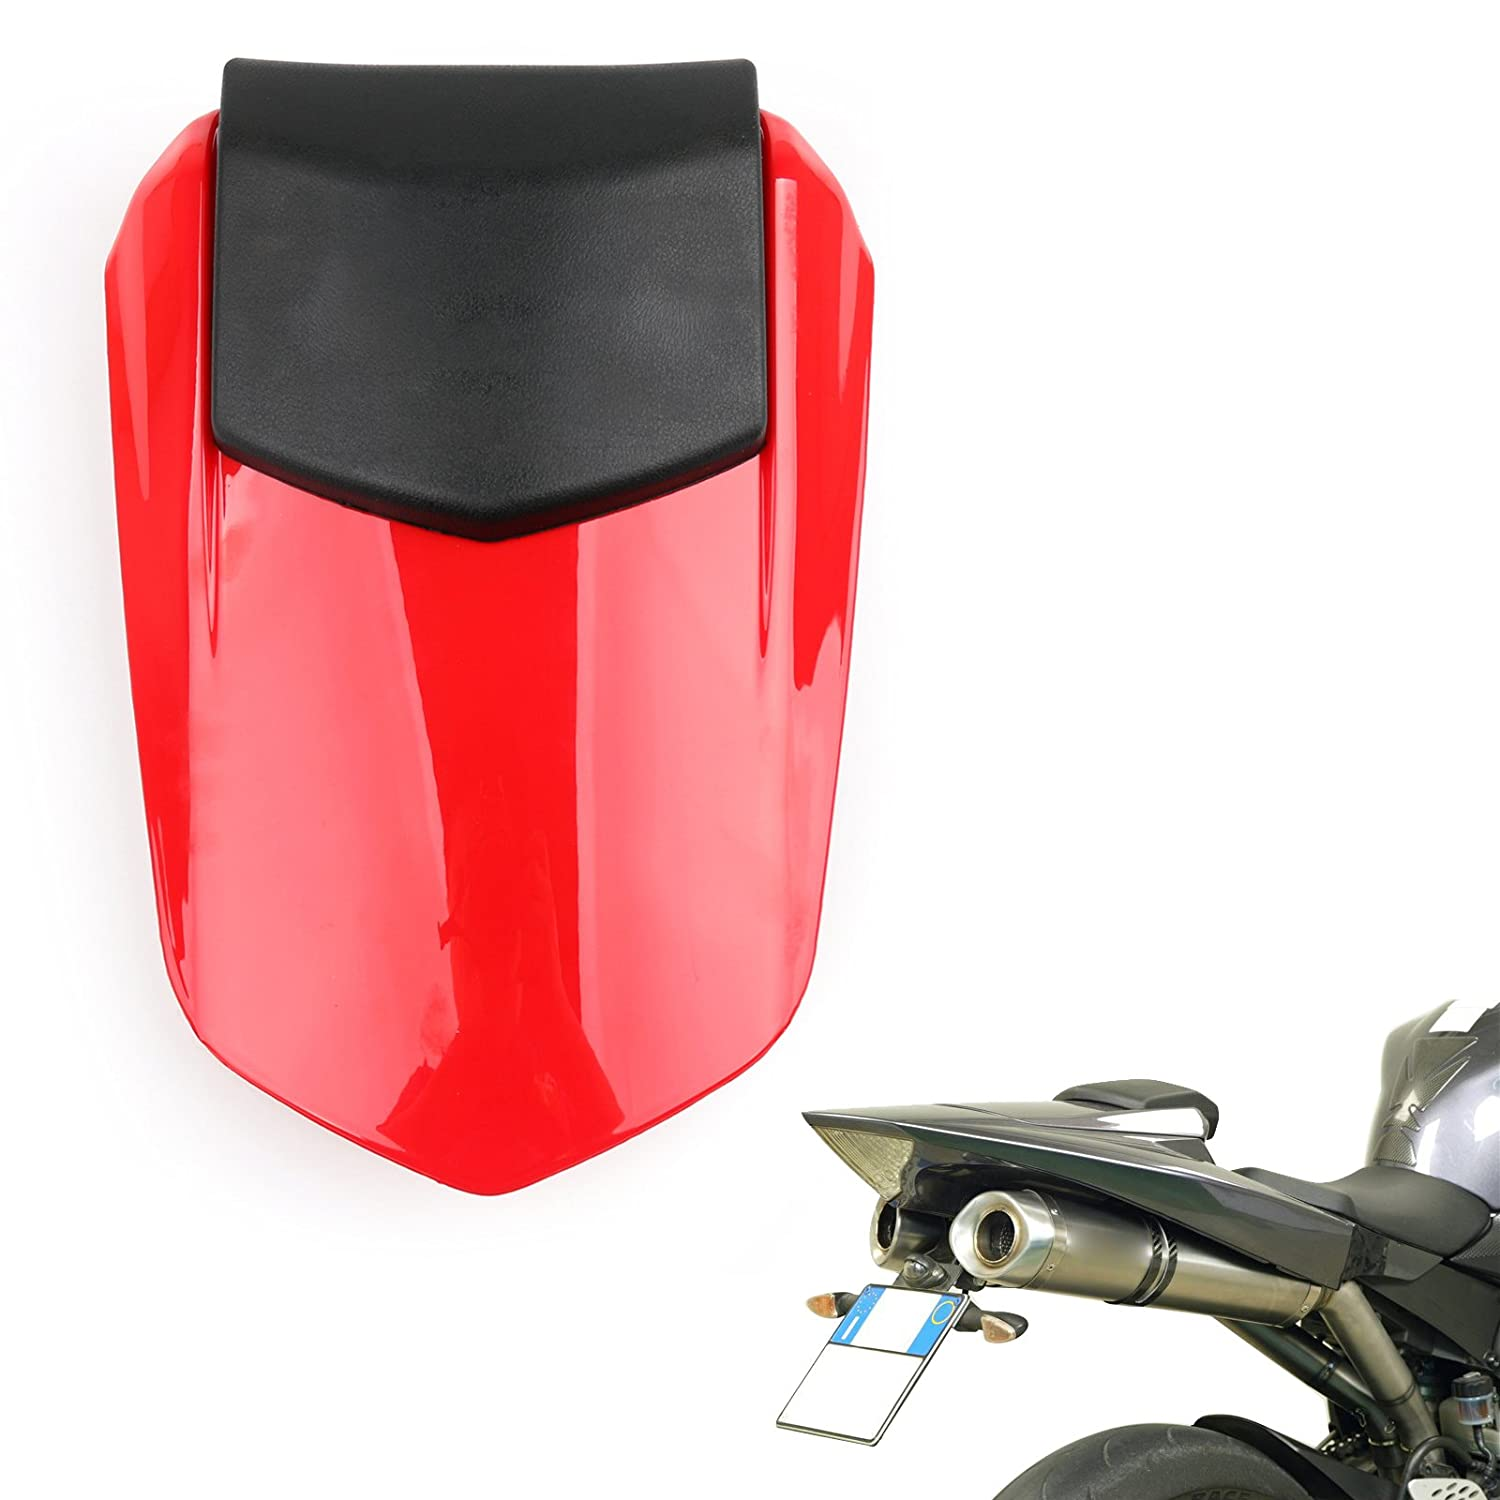 ZXMOTO Motorcycle Rear Pillion Passenger Seat for 2002 2003 Yamaha YZF R1